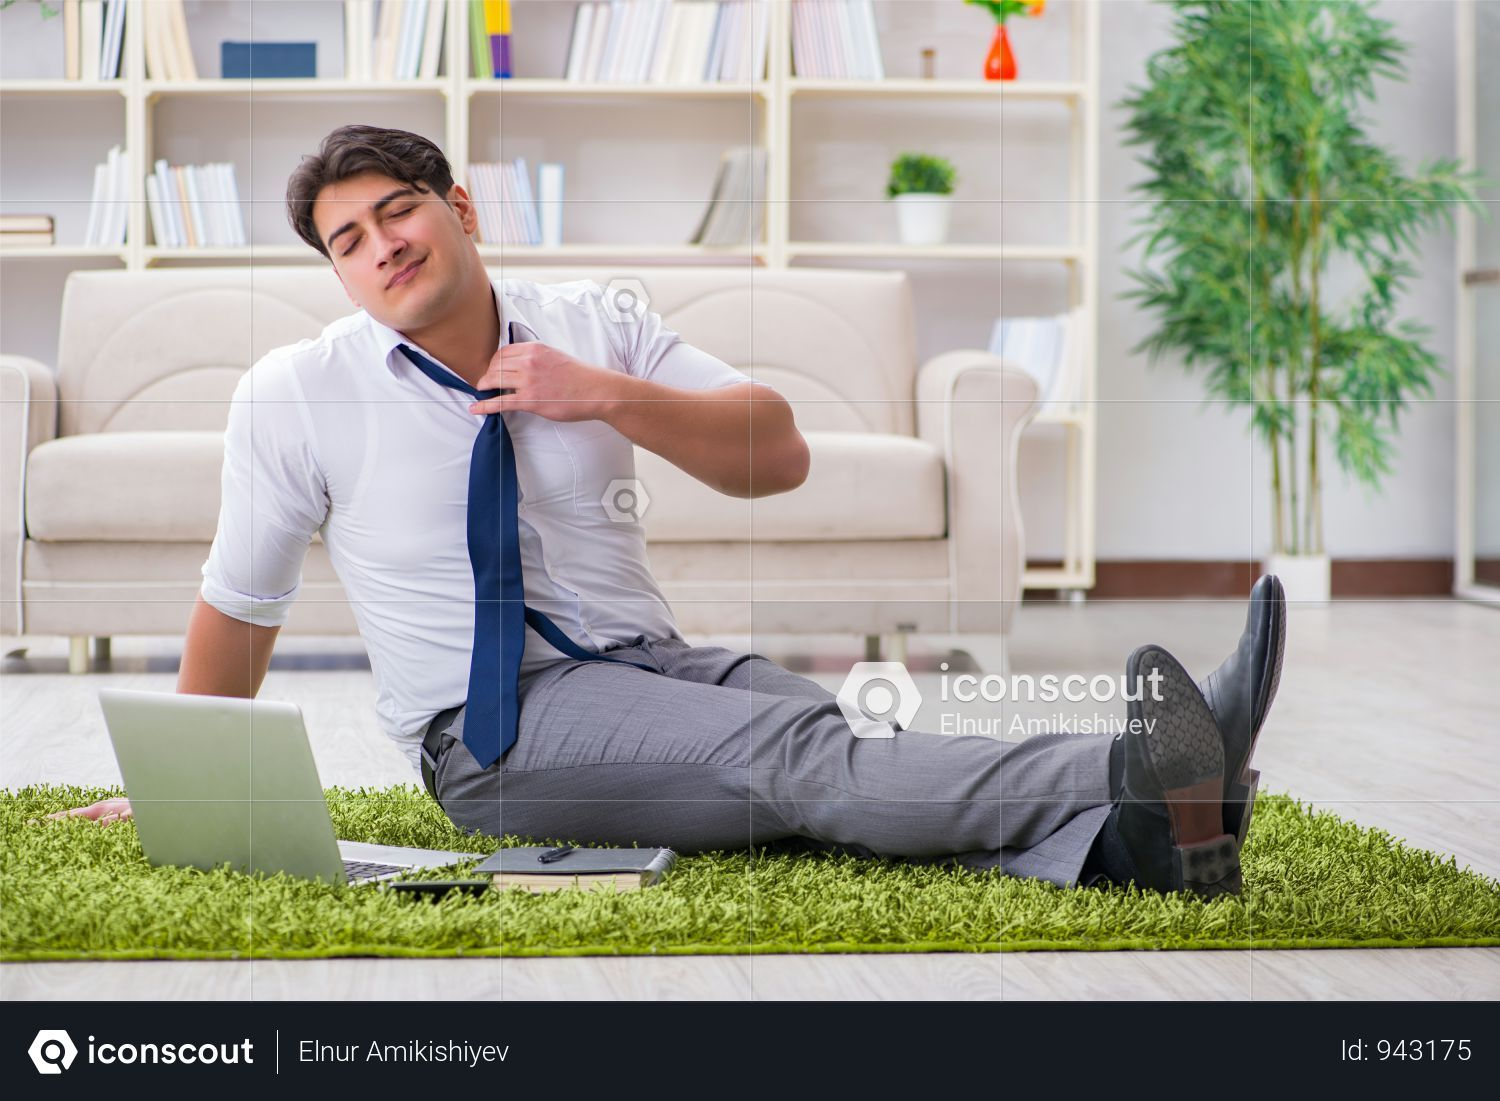 Premium Businessman Sitting On The Floor In Office Photo Download In Png Jpg Format Business Man Photo Professional Photo